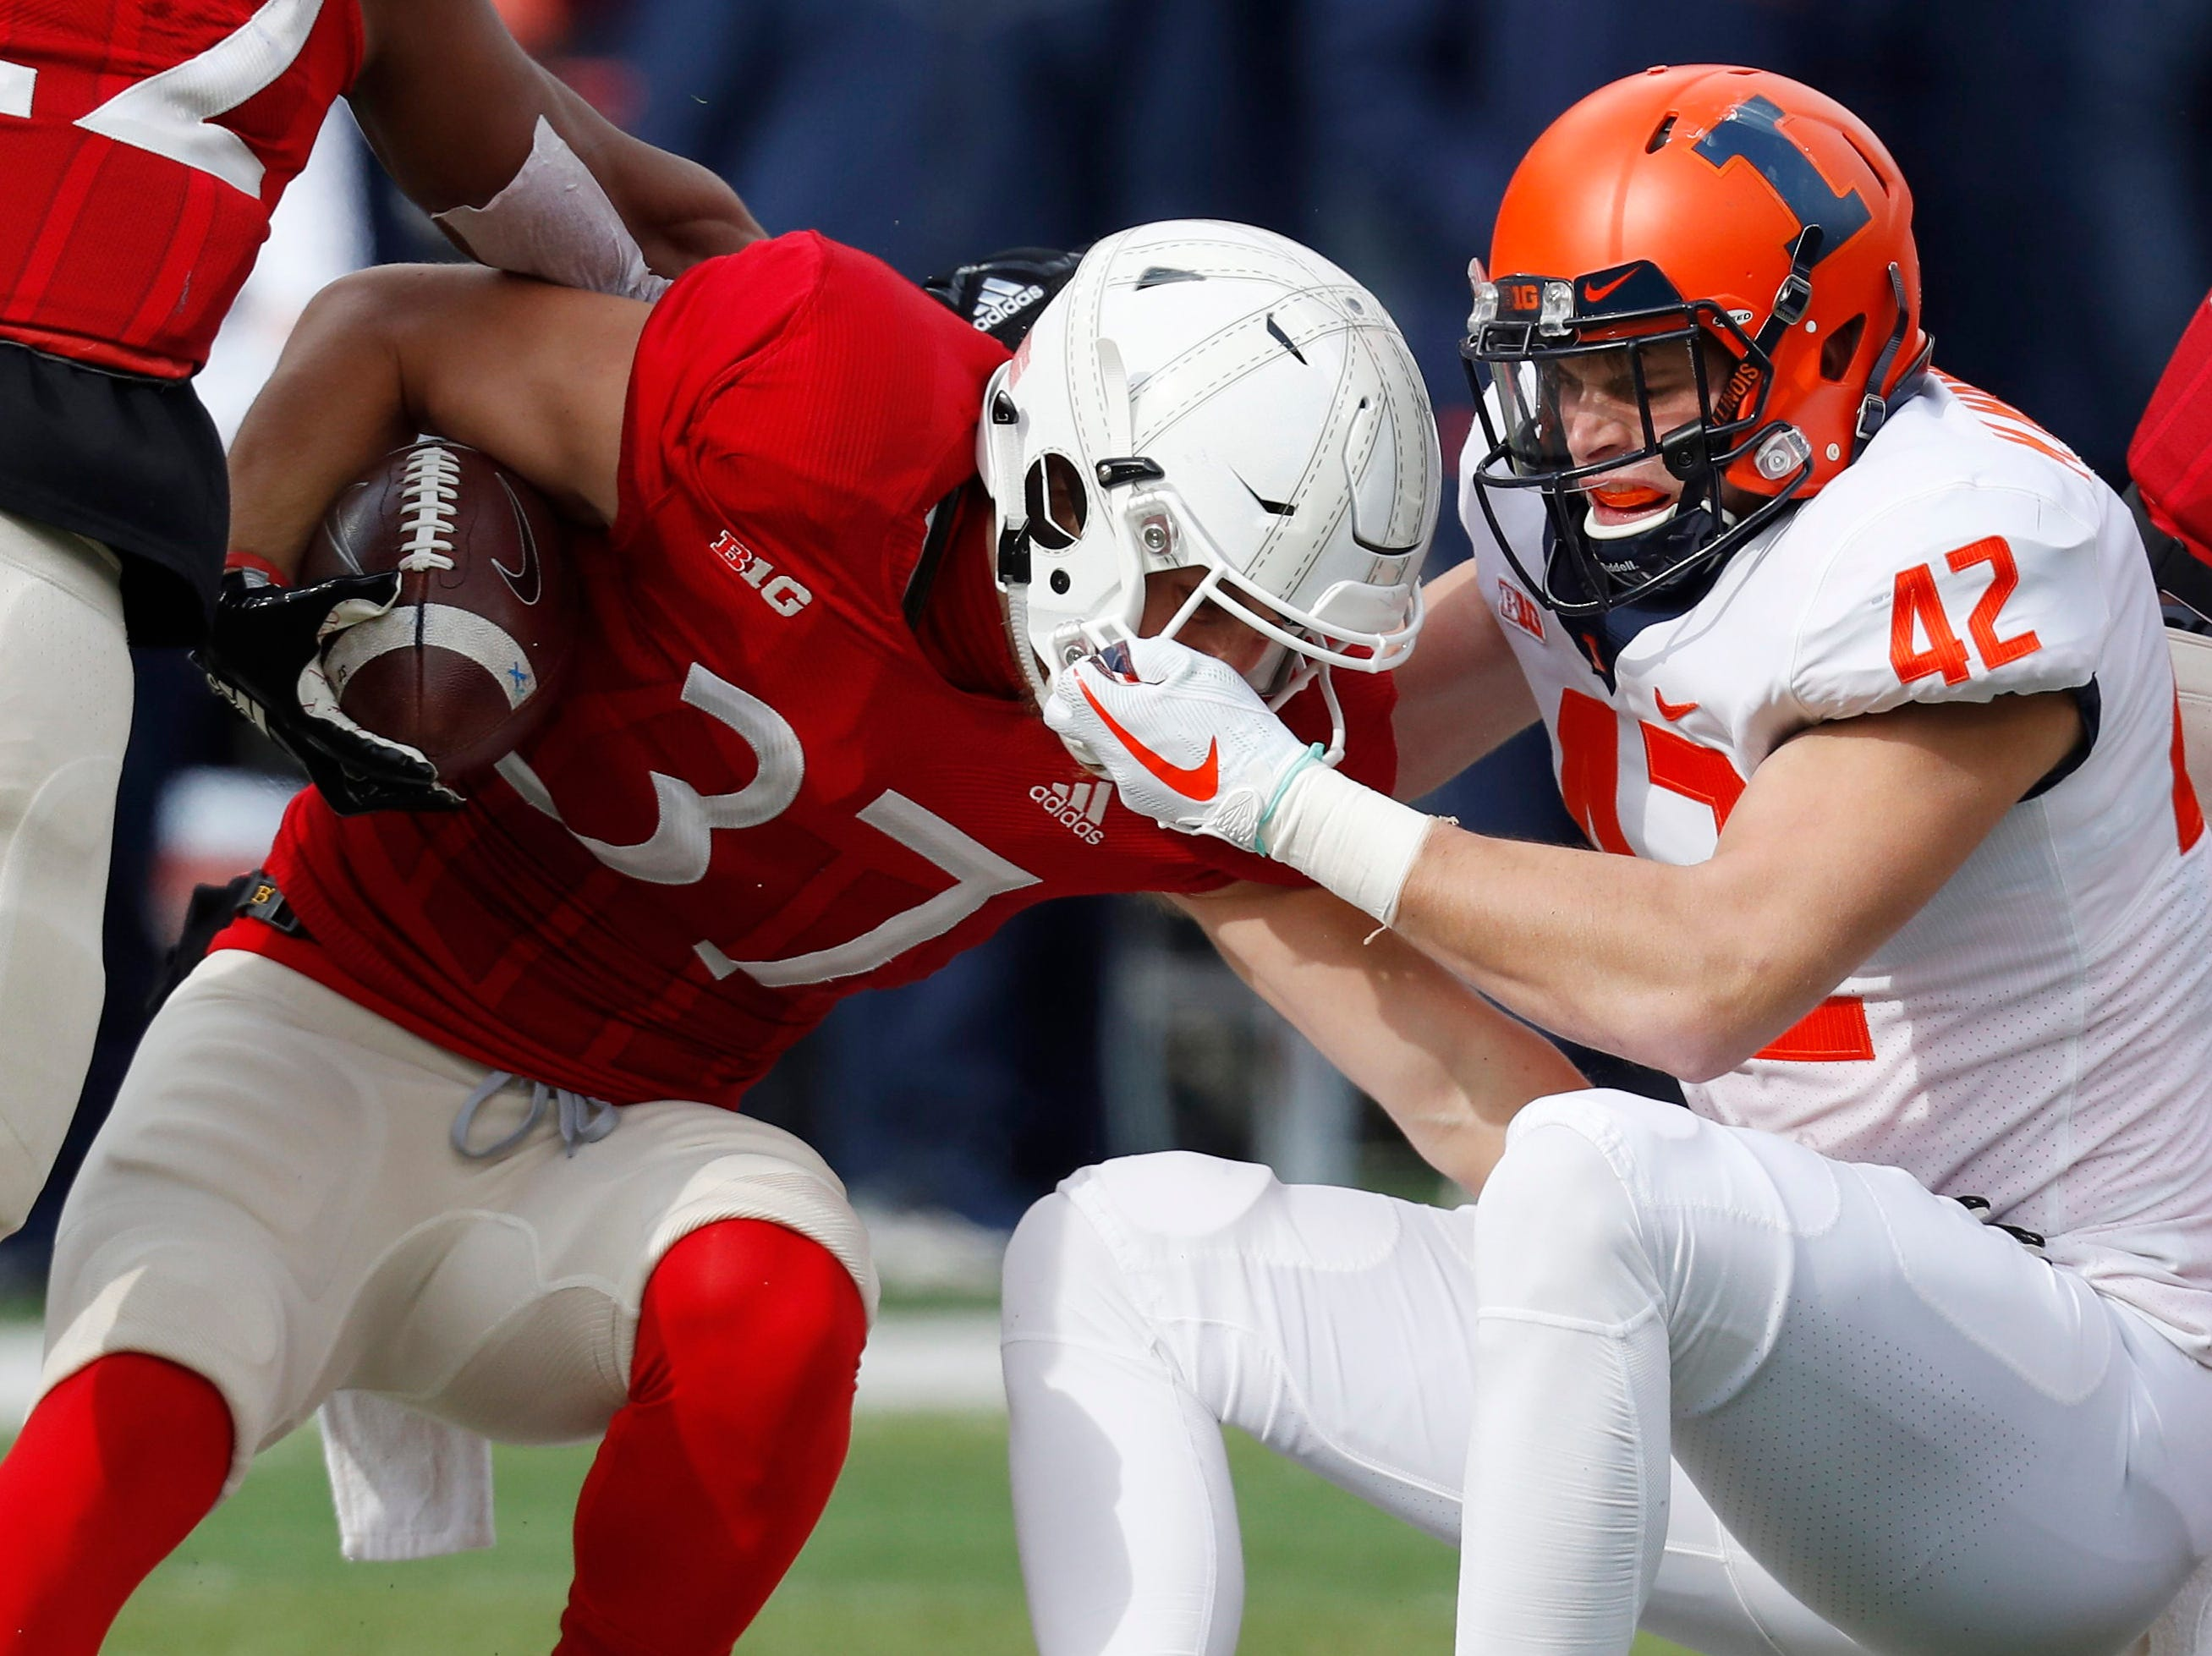 Illinois Fighting Illini defensive back Michael Marchese (42) grabs the facemask of Nebraska Cornhuskers running back Wyatt Mazour (37) in the first half at Memorial Stadium.